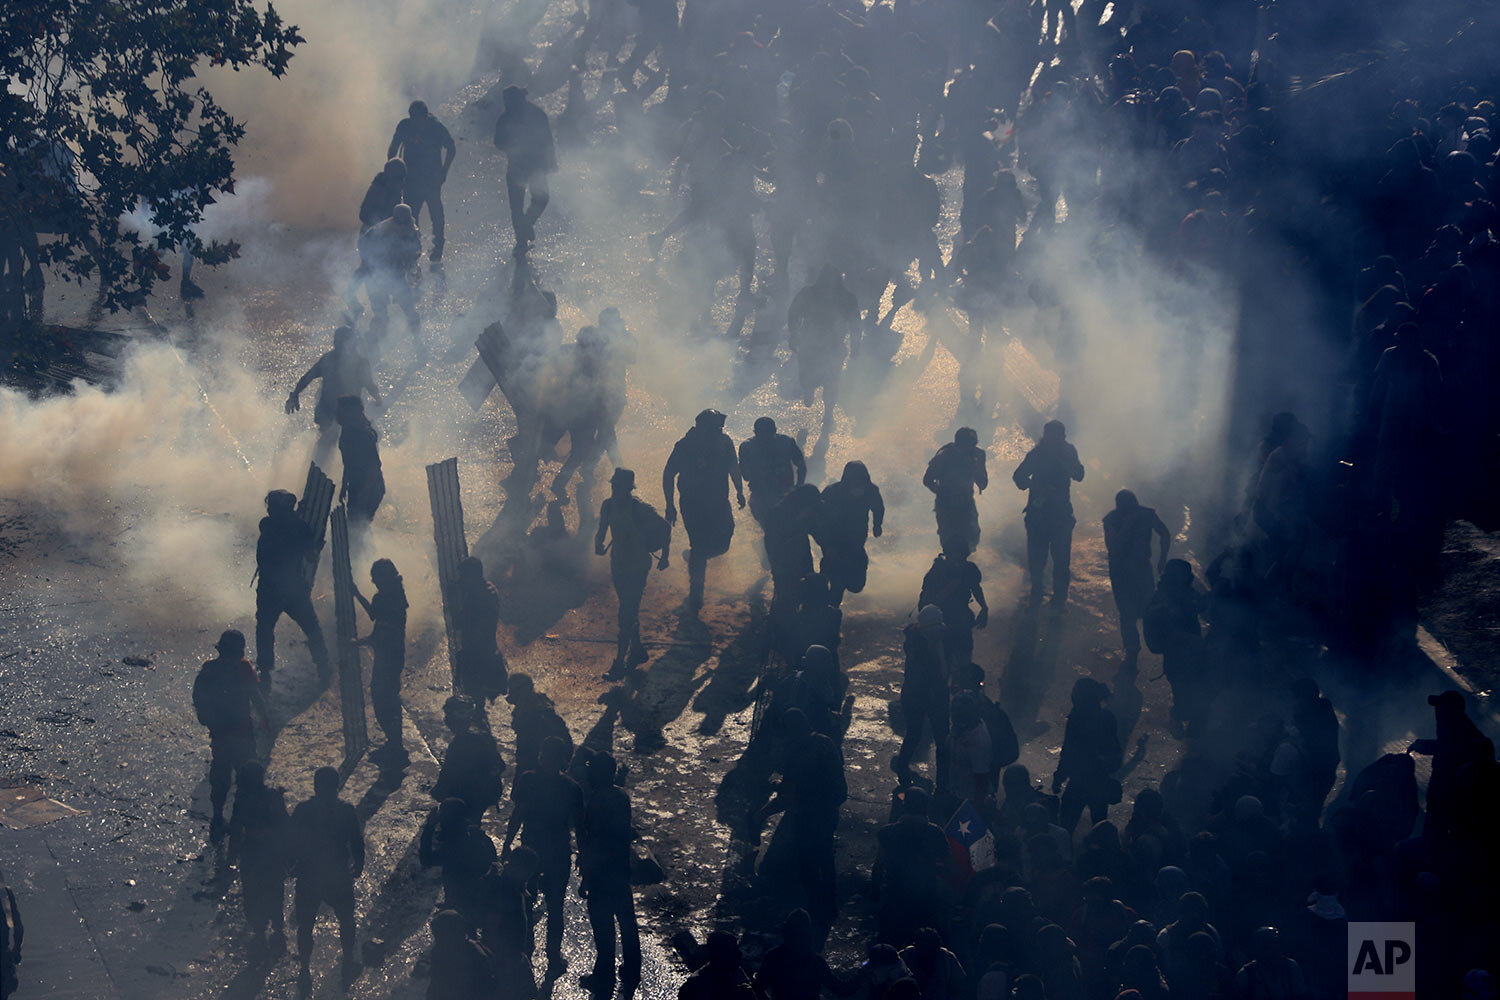 Protesters move amid tear gas launched by police during ongoing demonstrations triggered by an increase in subway fares in Santiago, Chile, Monday, Oct. 21, 2019. (AP Photo/Esteban Felix)